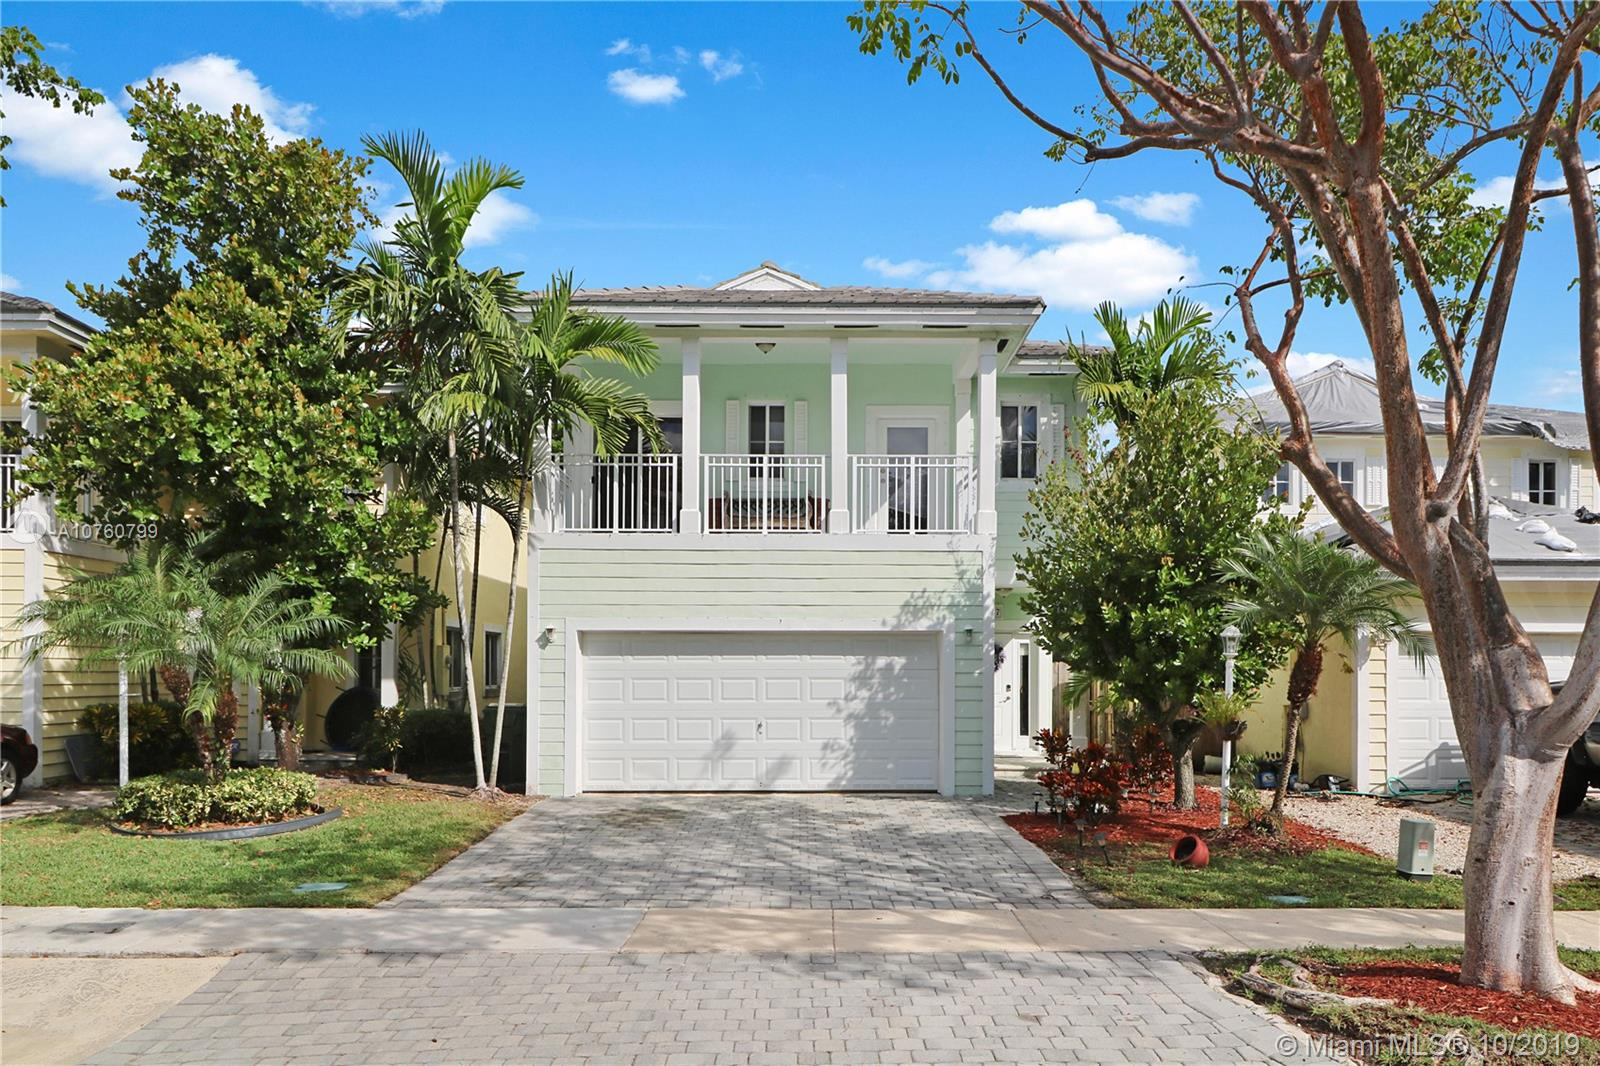 3507 NE 4th St, Homestead, FL 33033 - Homestead, FL real estate listing